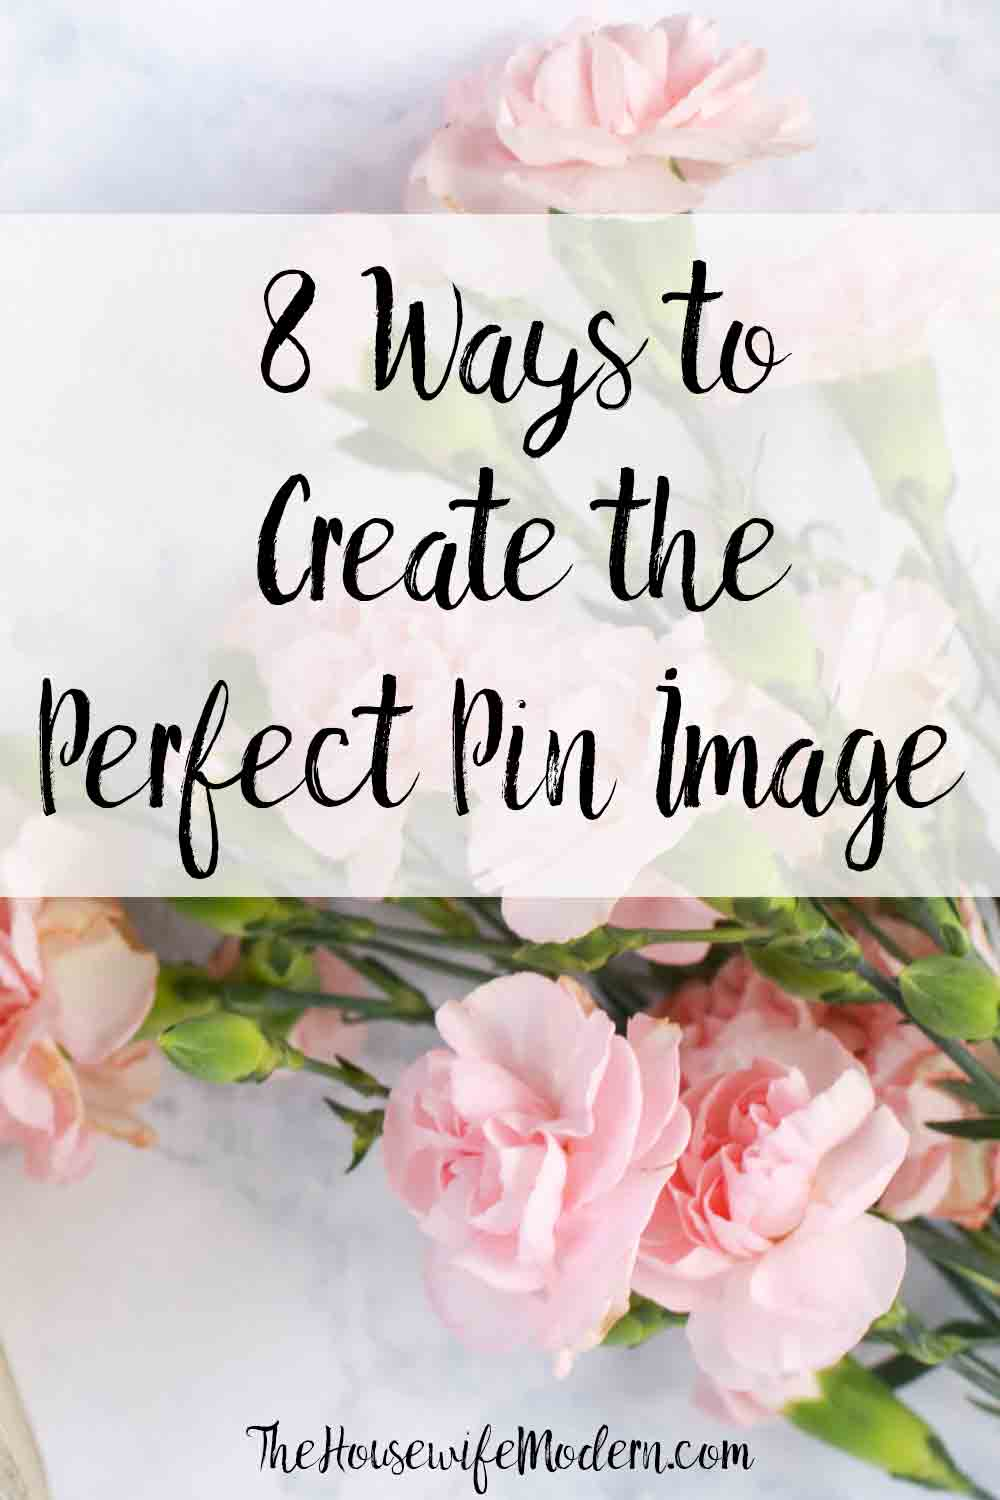 8 Ways to Create Perfect Pin Images. Ever wonder exactly what creates perfect pin images that actually result in clicks and saves? Here's the answer.